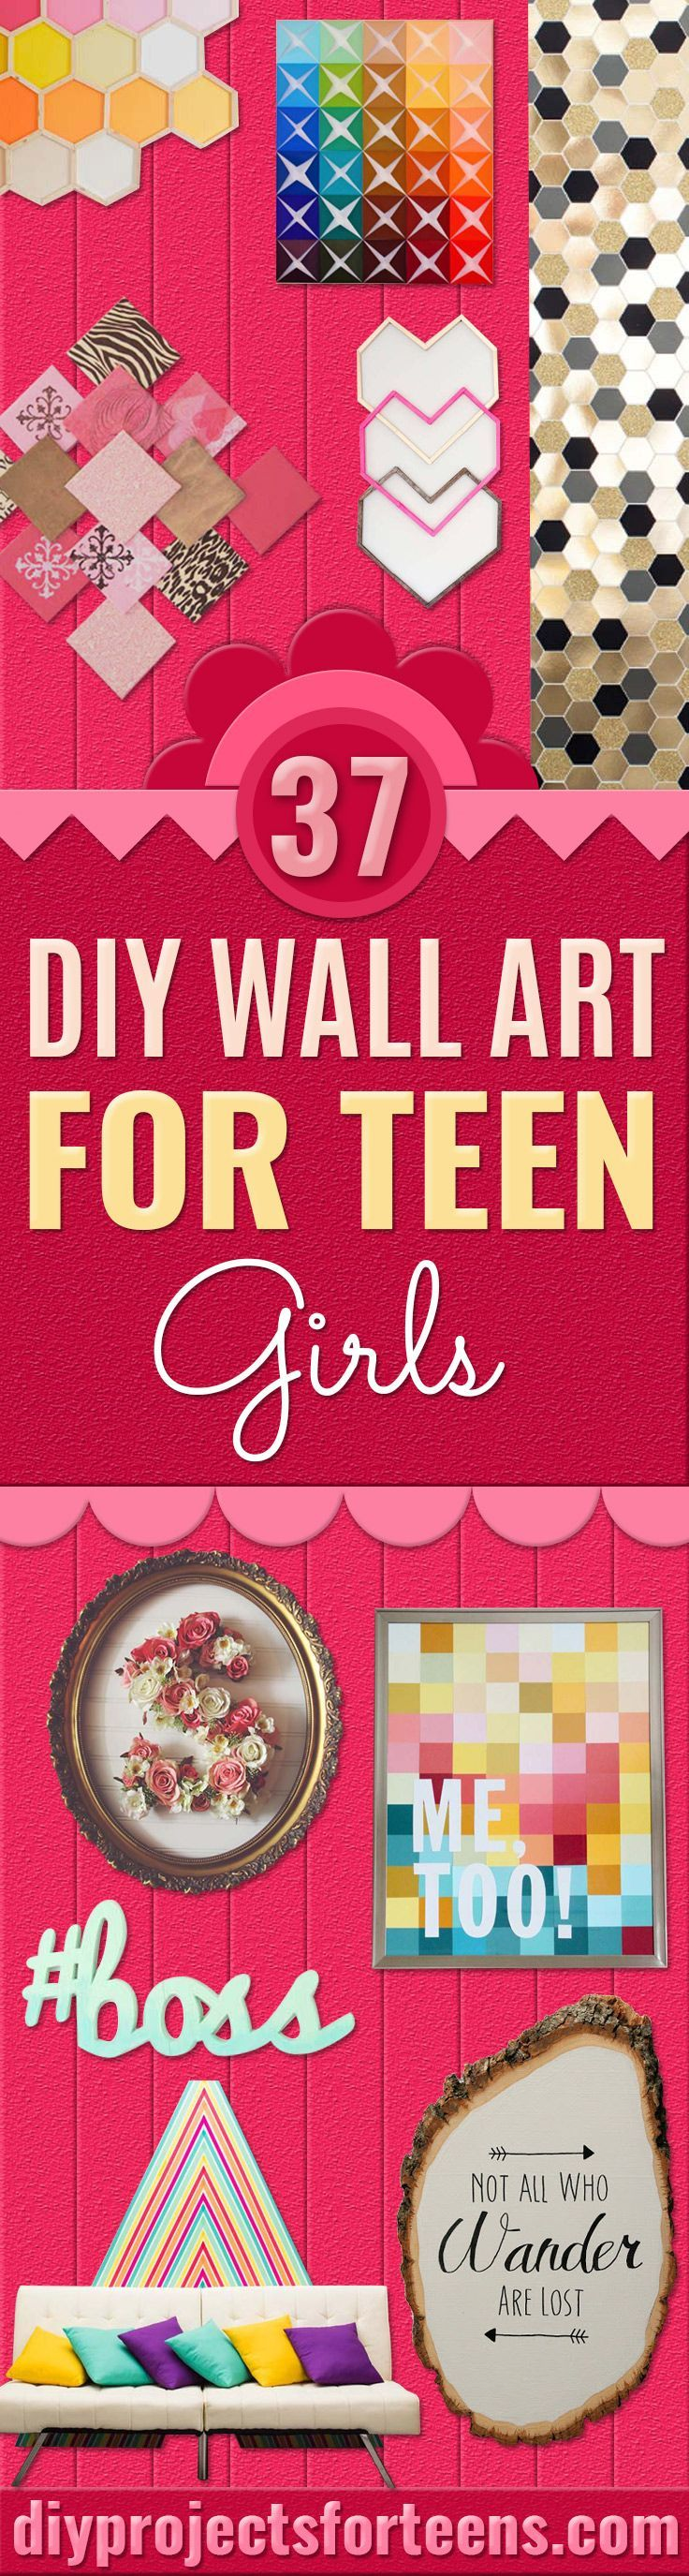 DIY Wall Art Ideas for Teen Rooms -Cheap and Easy Wall Art Projects for Teenagers - Girls and Boys Crafts for Walls in Bedrooms - Fun Home Decor on A Budget - Cool Canvas Art, Paintings and DIY Projects for Teens http://diyprojectsforteens.com/diy-wall-art-teens